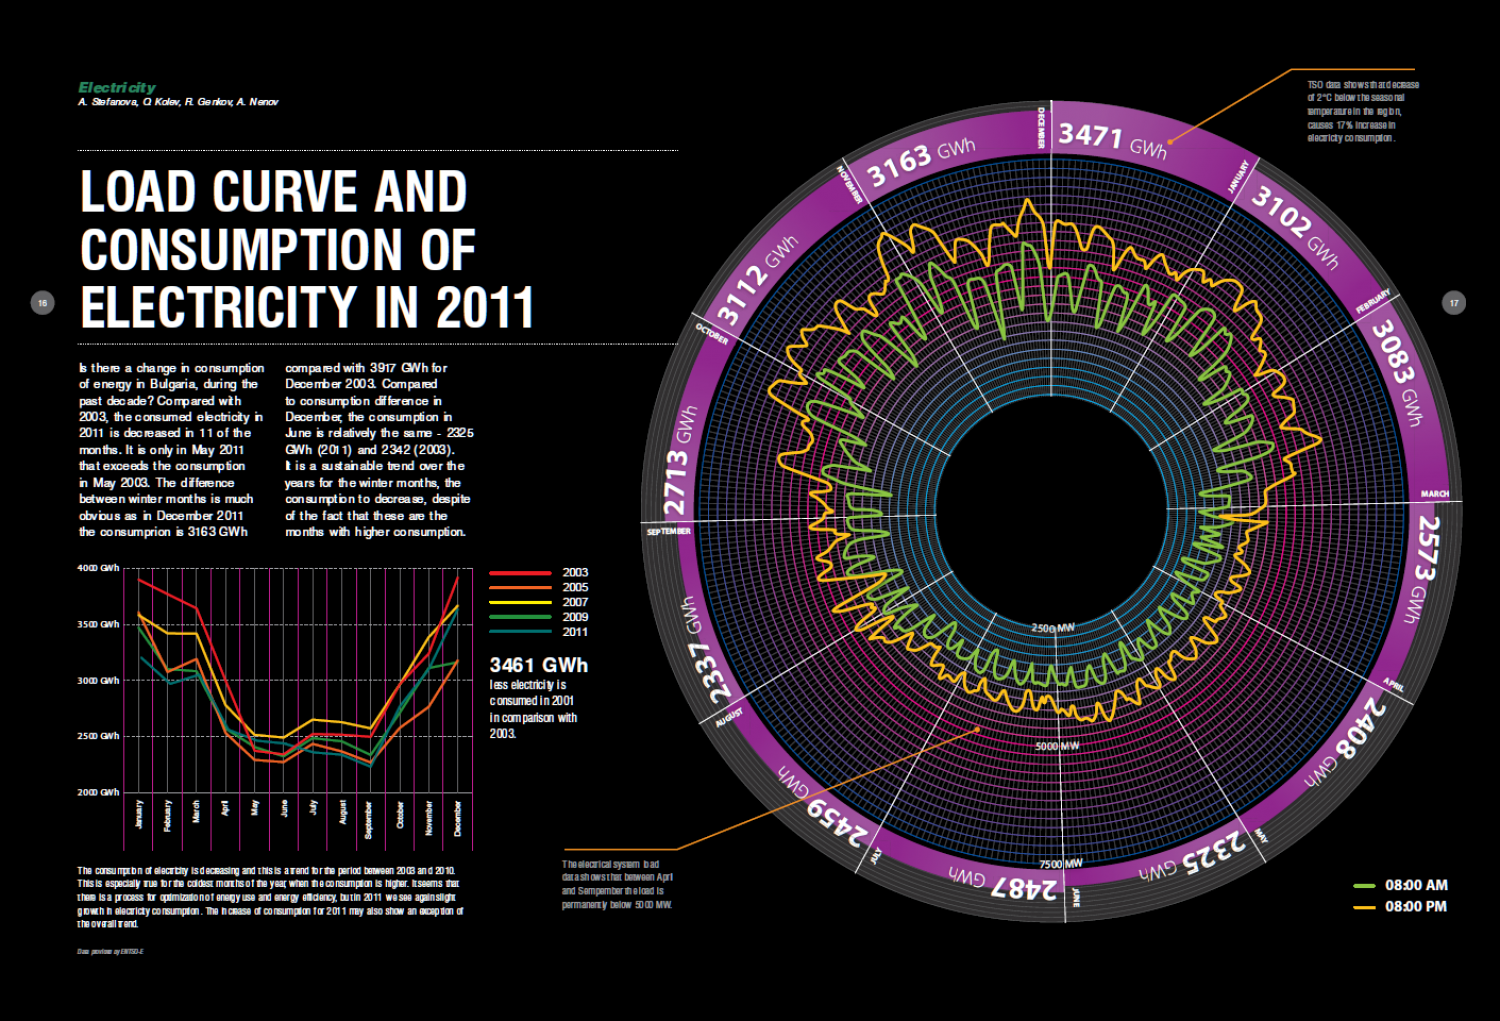 Electricity load and consumption curve for Bulgaria (2011) Infographic